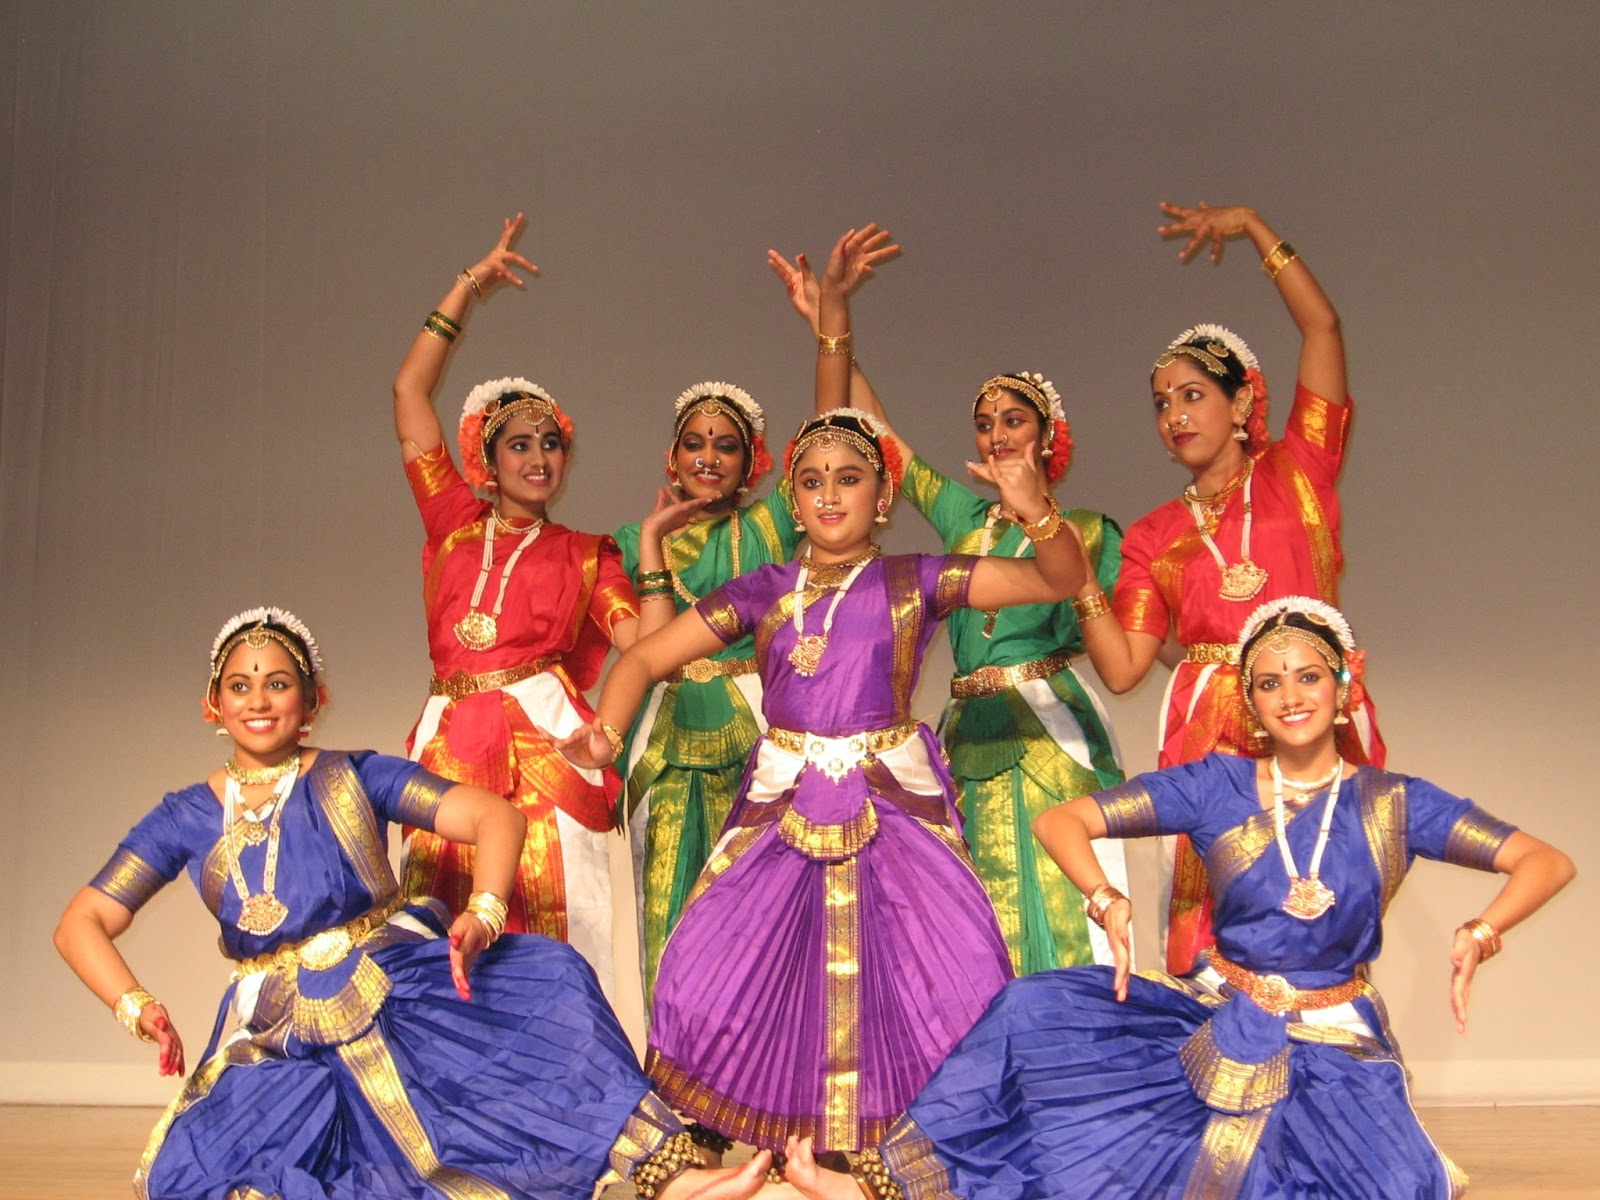 indian classical dance and music Find indian classical tracks, artists, and albums find the latest in indian classical music at lastfm.